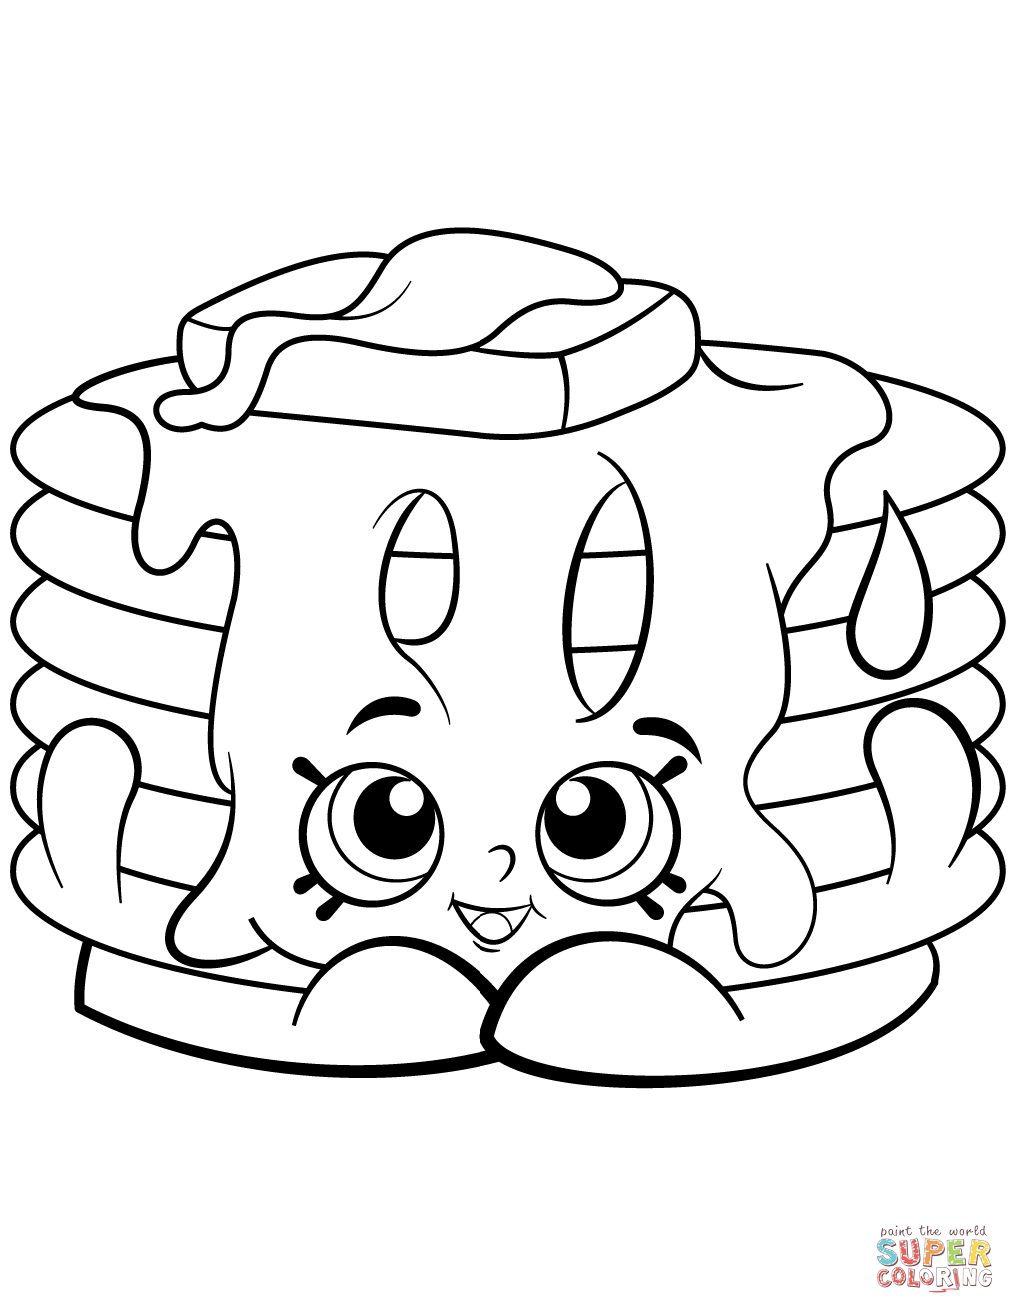 1015x1314 Ice Cream Shopkin Coloring Sheet